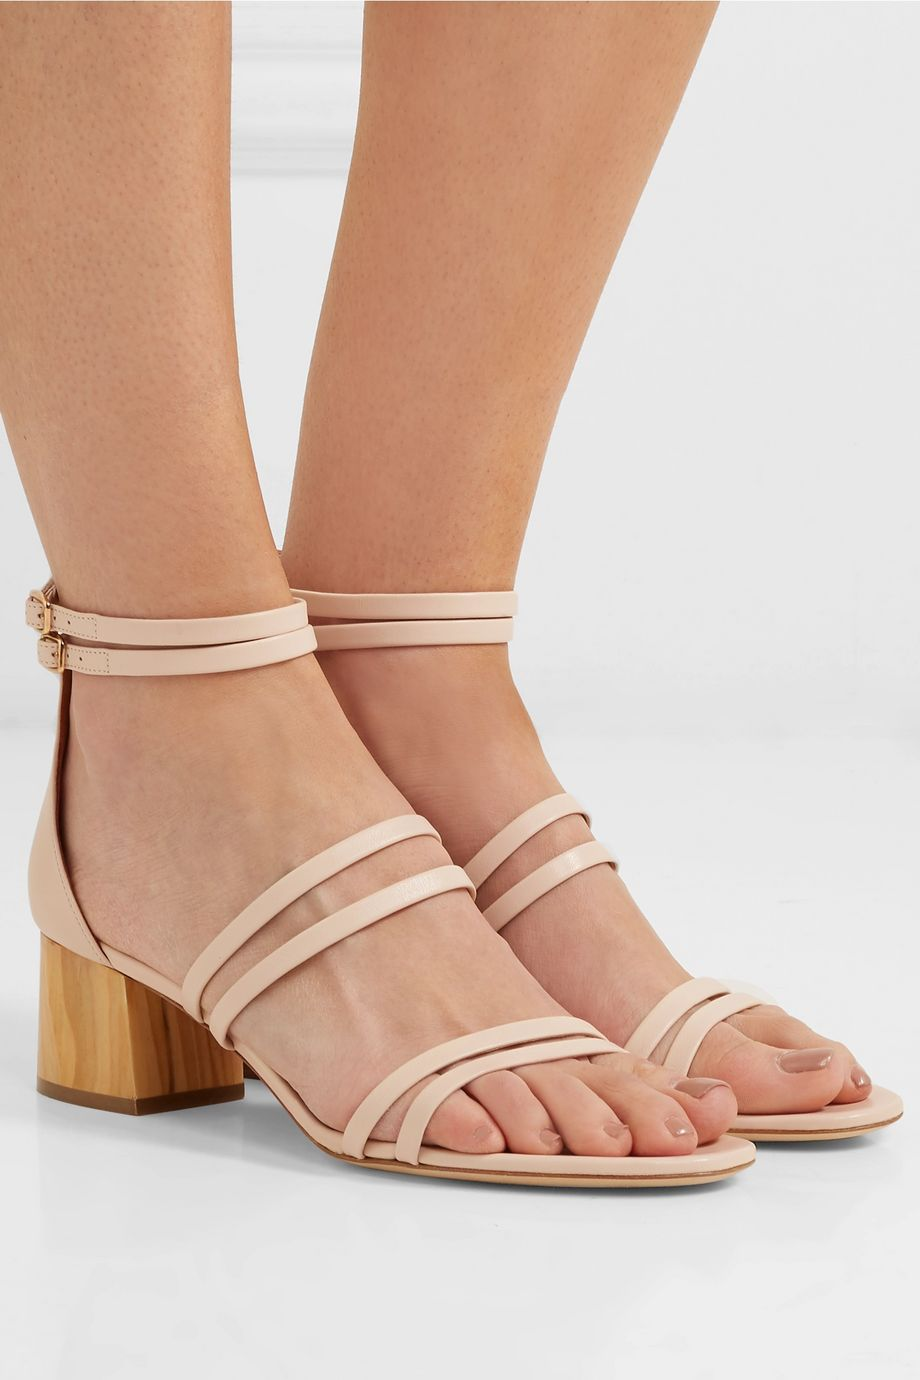 Malone Souliers Elyse 50 leather sandals